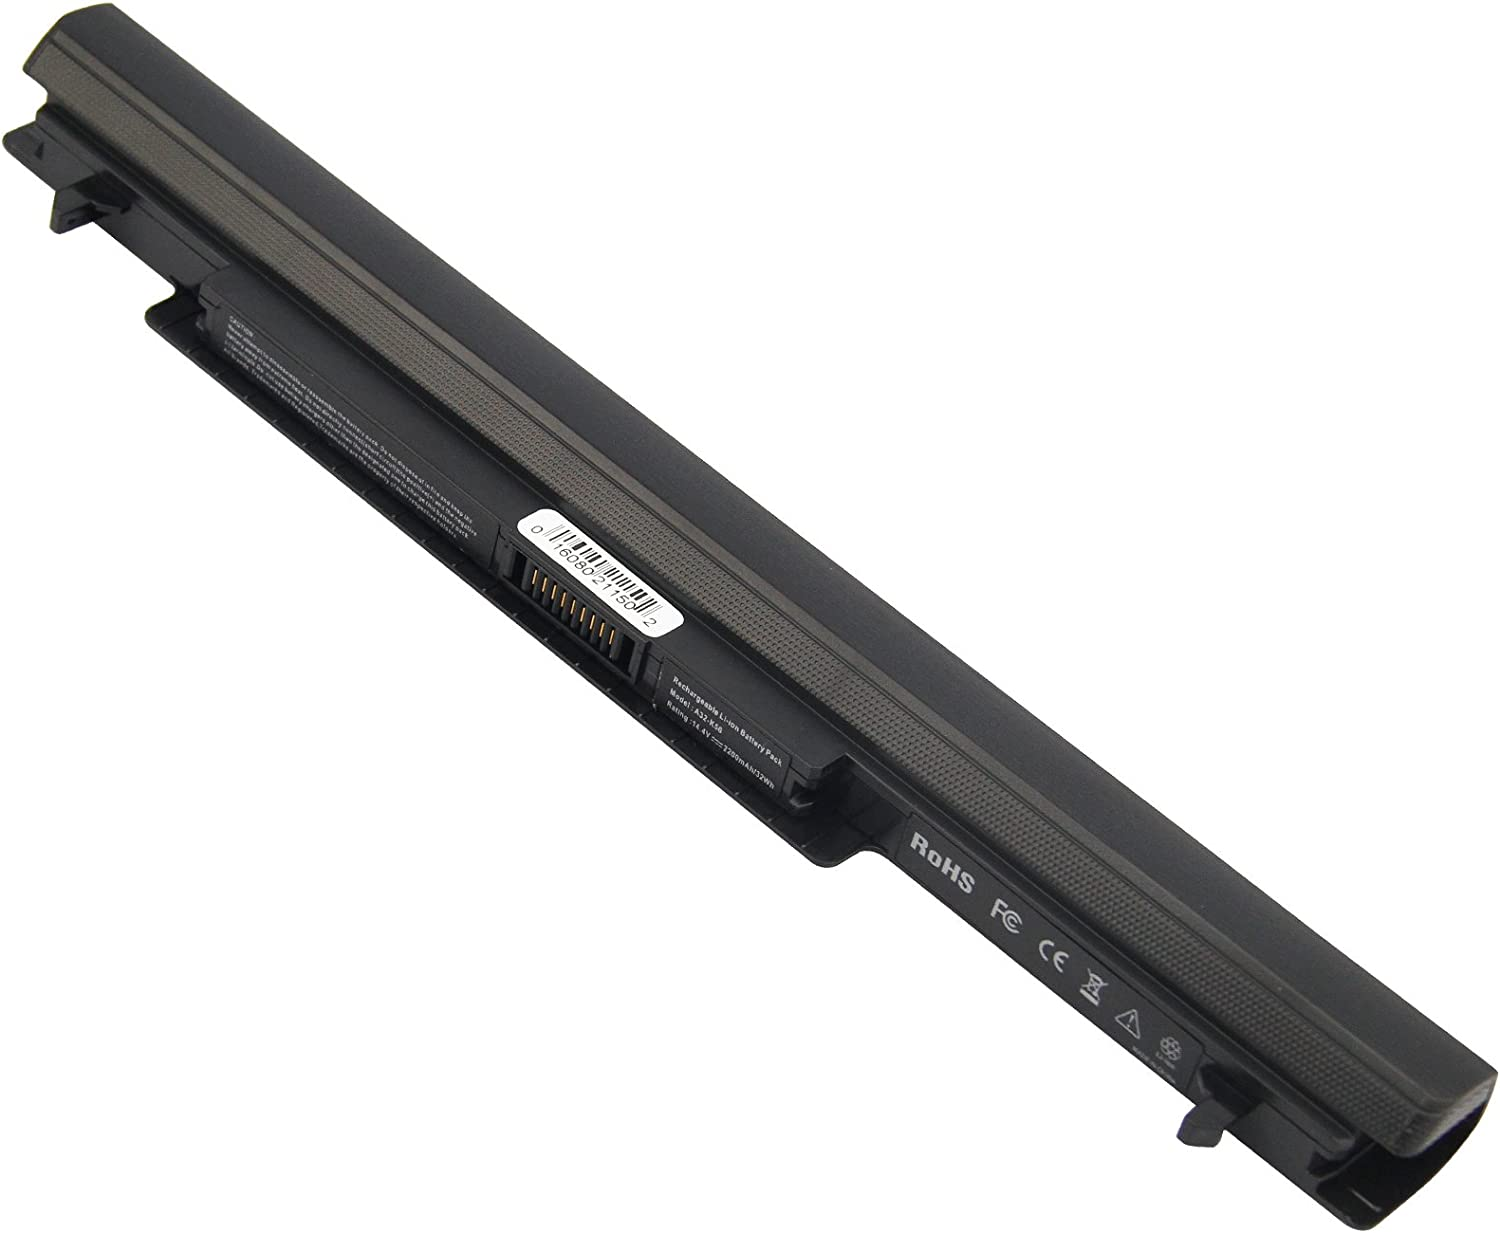 Laptop Battery for Asus K46CM K46CB K56CA S46C S56CA A31-K56 A32-K56 A41-K56 A42-K56 K56LM2H K56LM9C